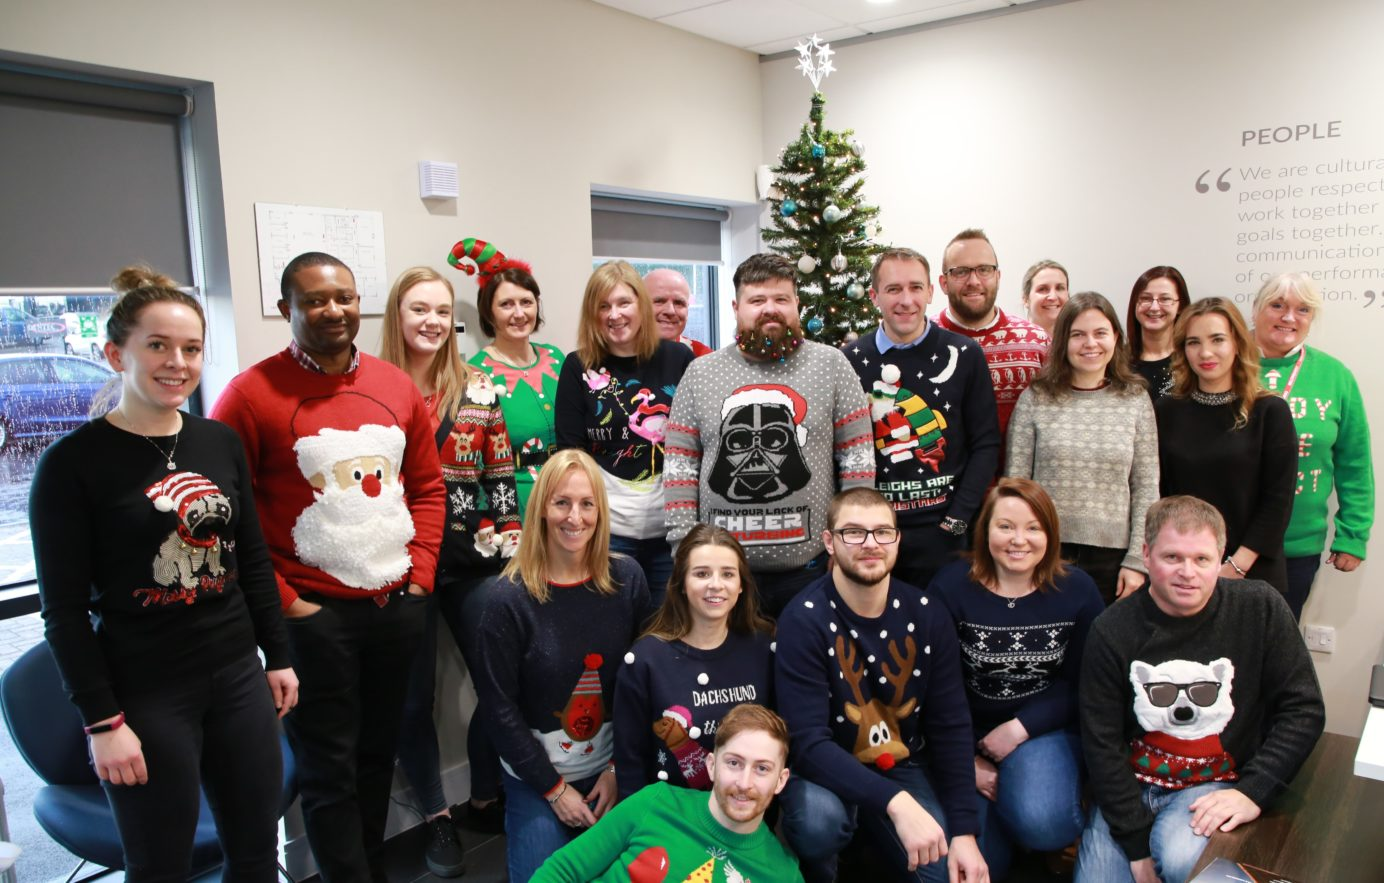 Tendeka team wearing their Christmas jumpers